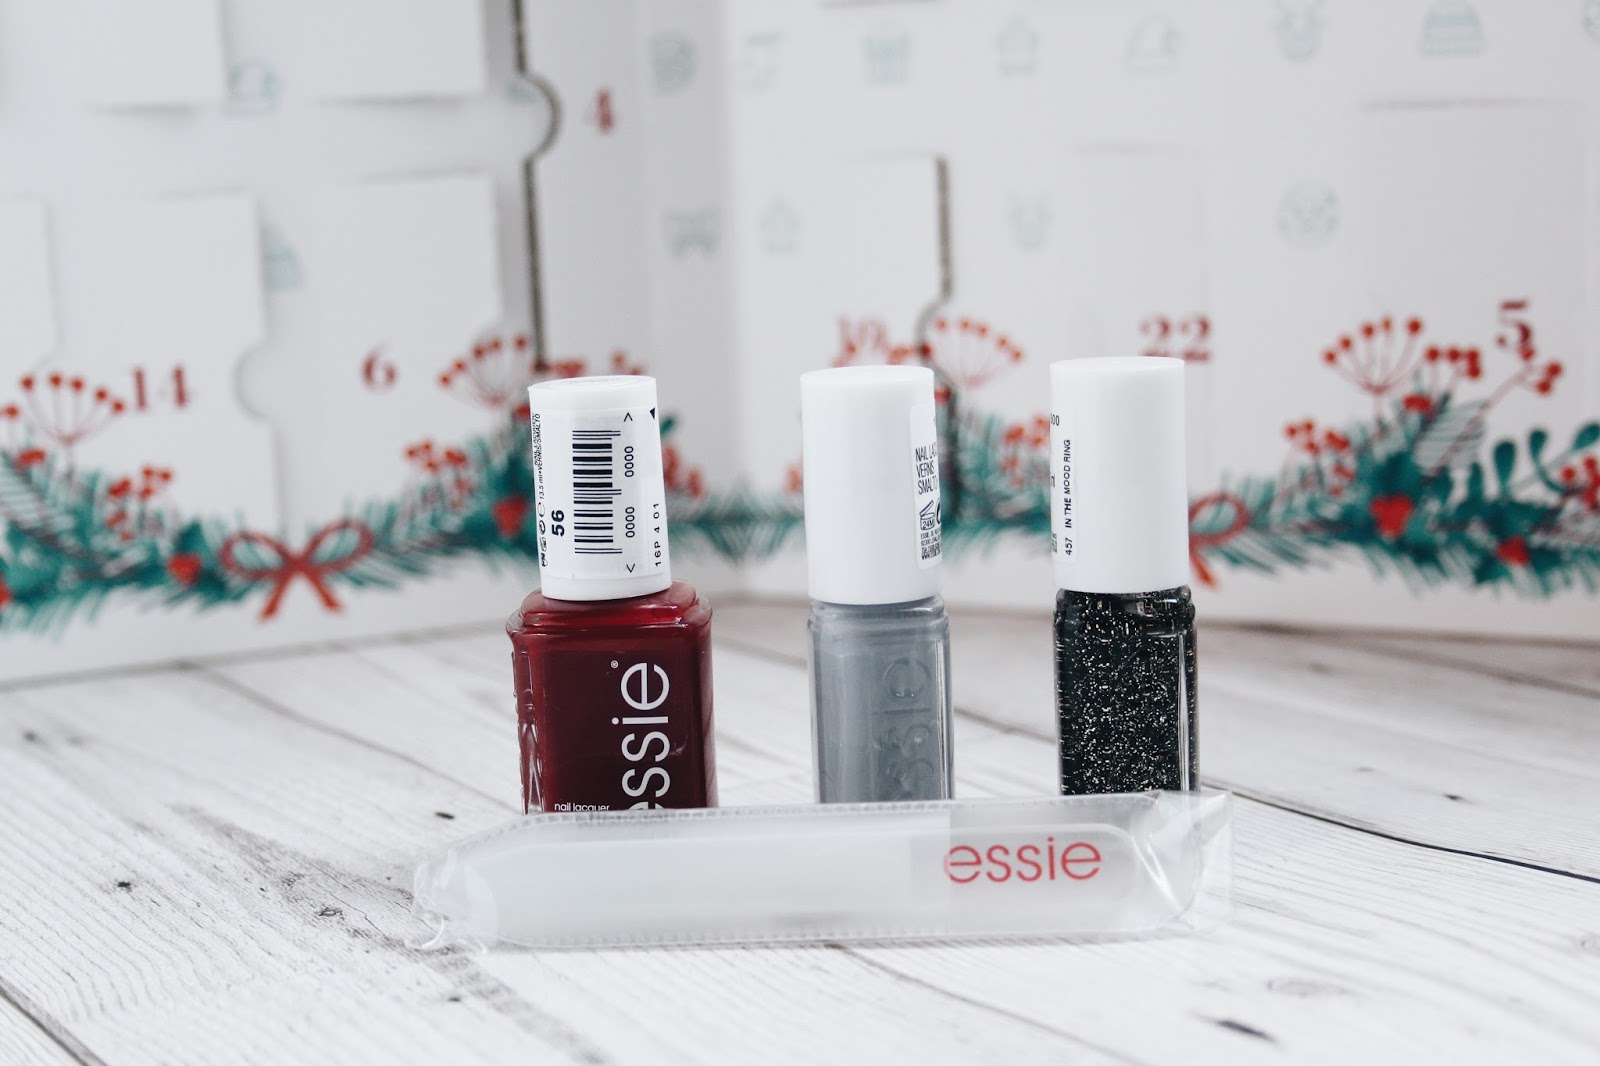 Essie Days 1-4